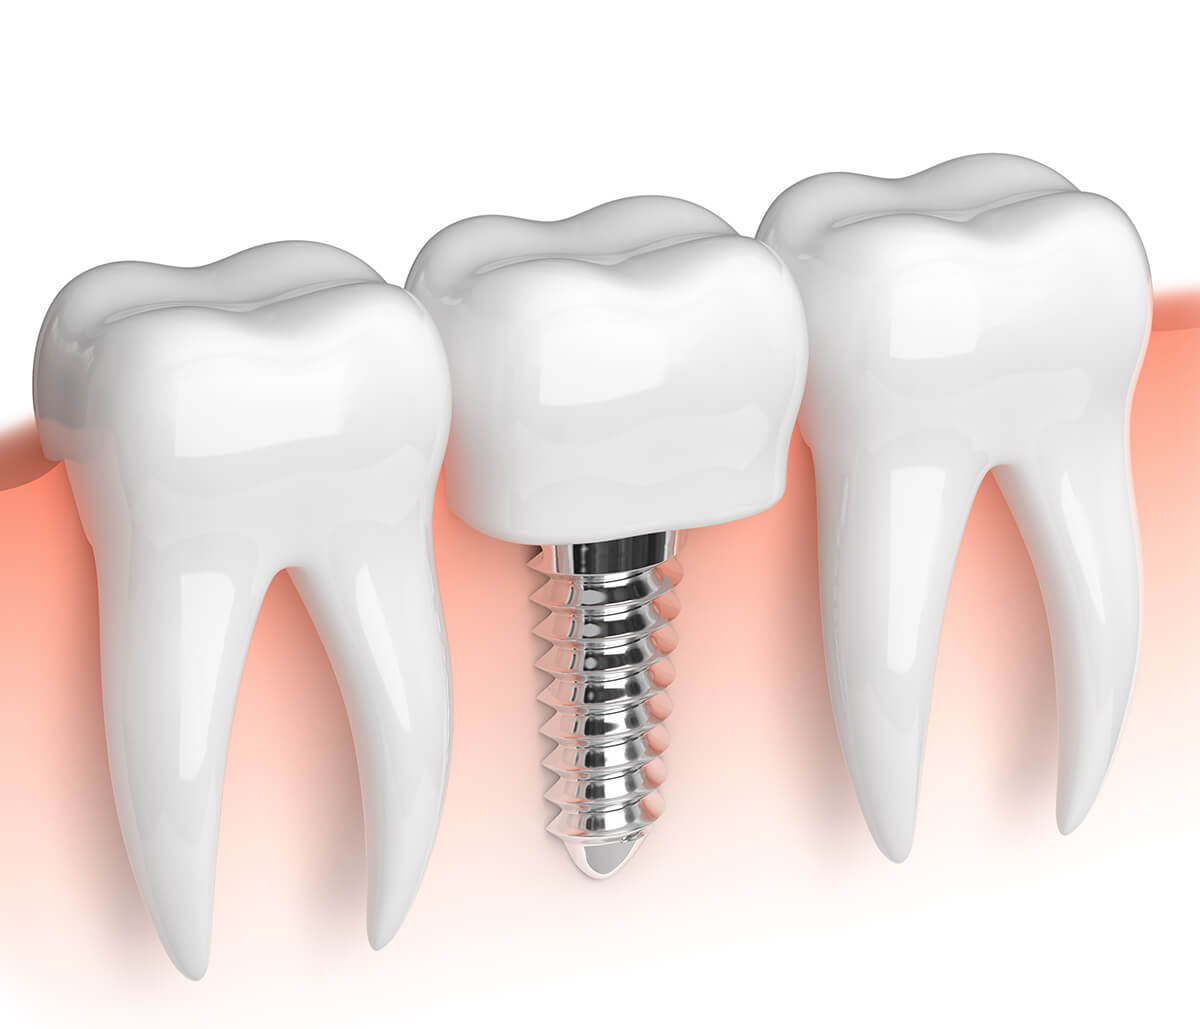 What is the Cost per Tooth for Dental Implants in Daly City, California Area?